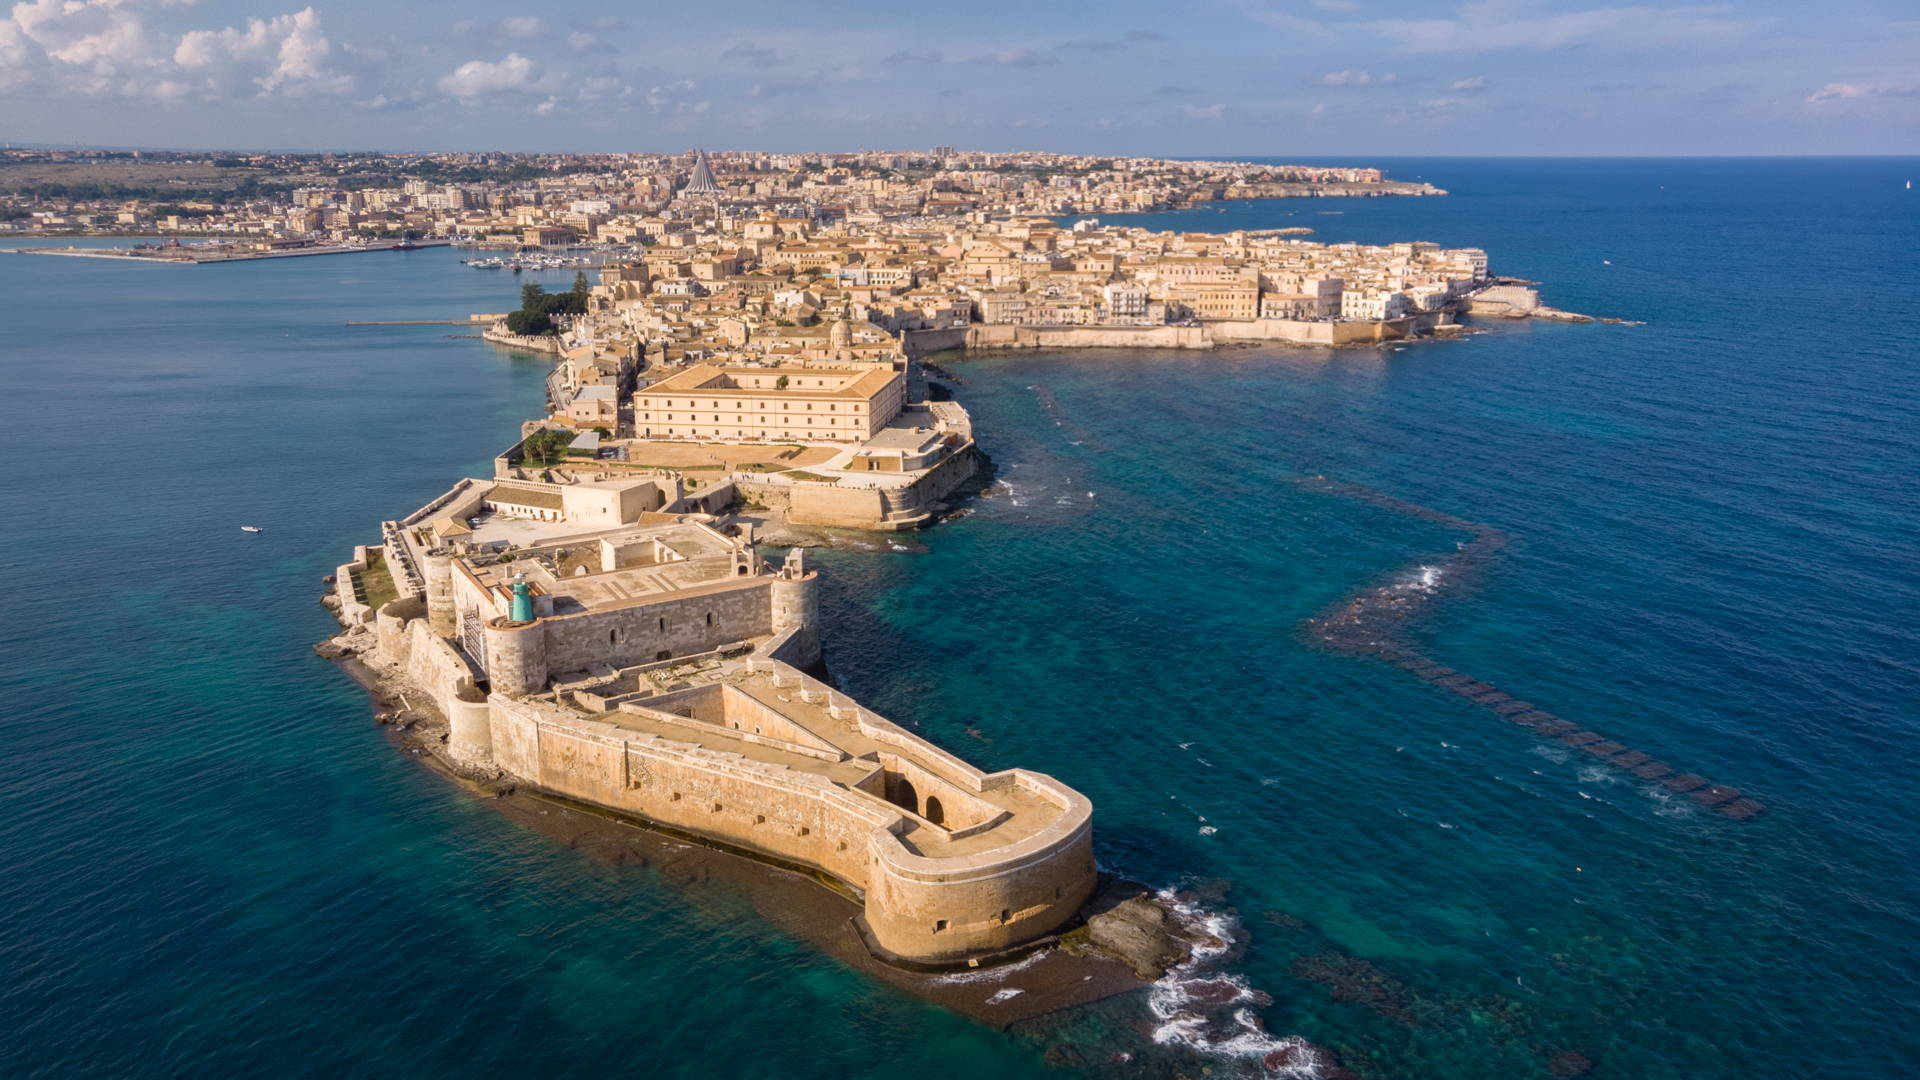 syracuse, ortigia, syracuse drone, aerial syracuse, ortigia drone, aerial ortigia, sicily, sicily by drone, travel sicily, travel ortigia, travel syracuse, backpaking in sicily, best places sicily, best places to visit in sicily, top sicily, aerial sicily, sicily drone